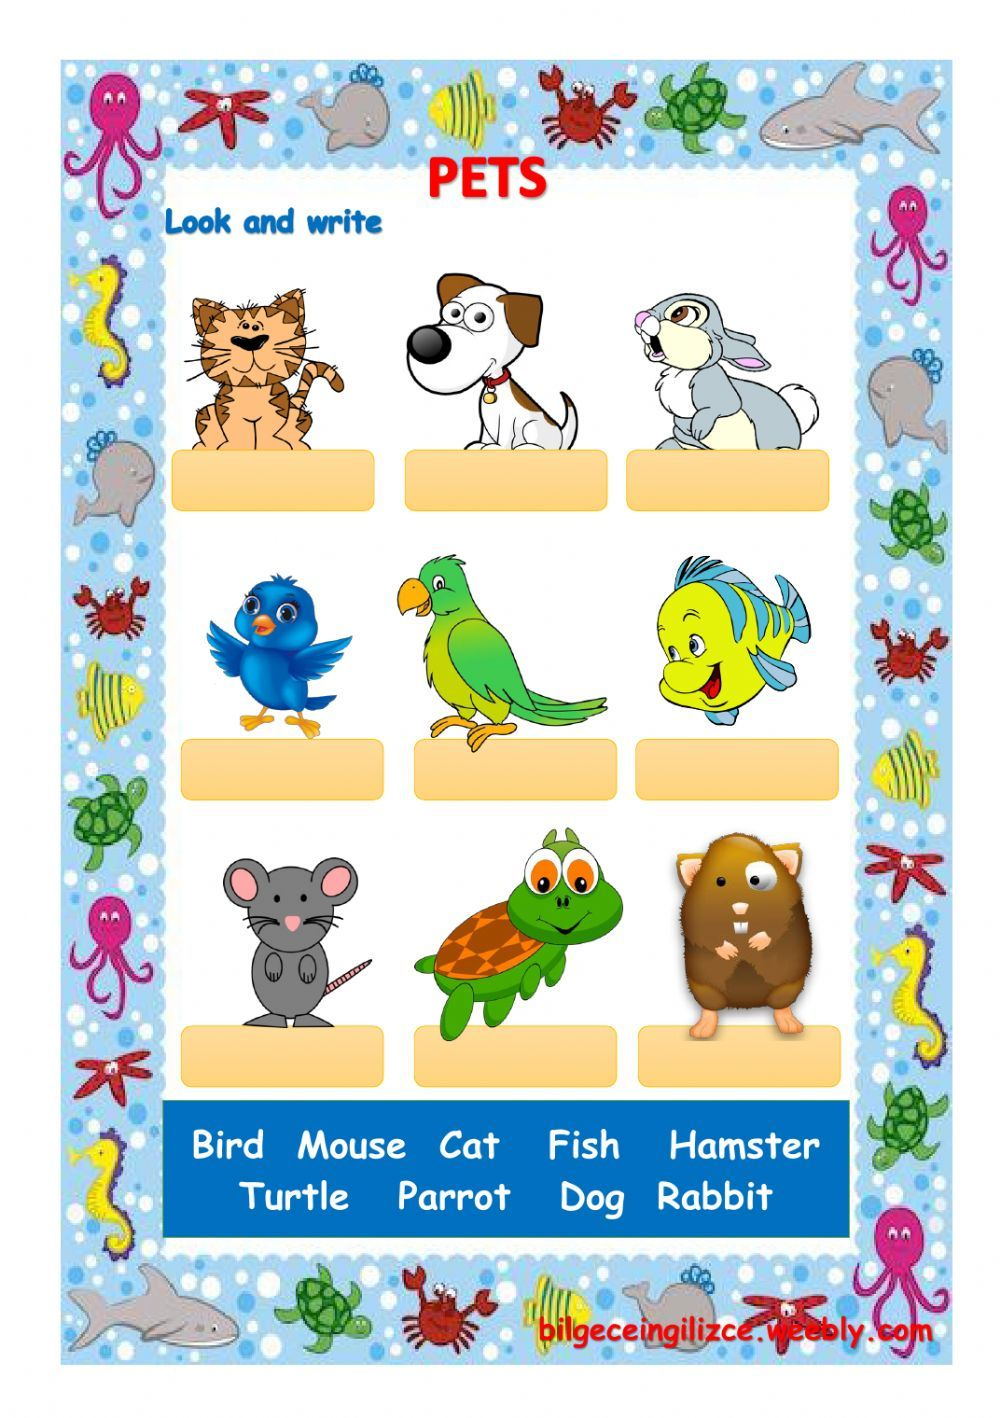 Animals interactive and downloadable worksheet. You can do